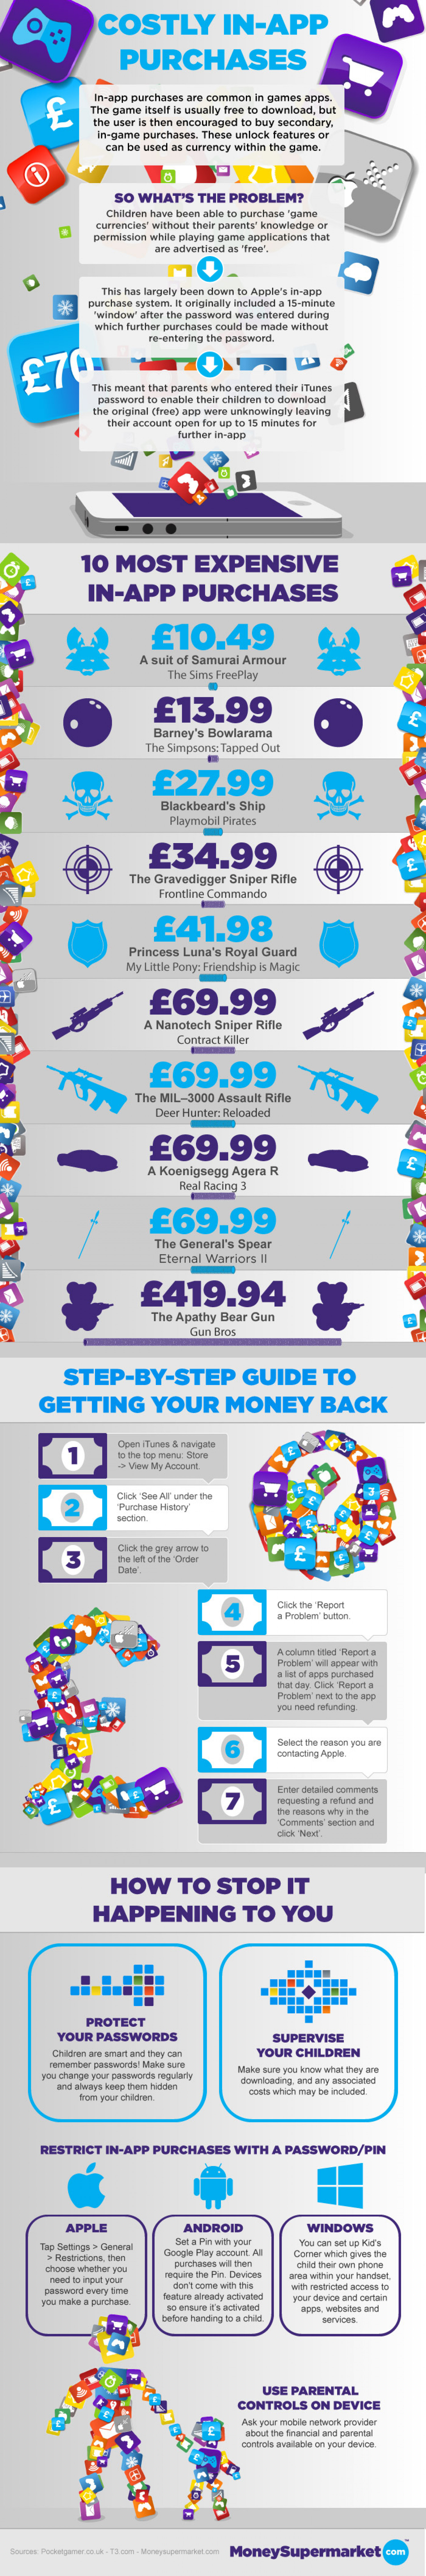 Costly In-App Purchases Infographic